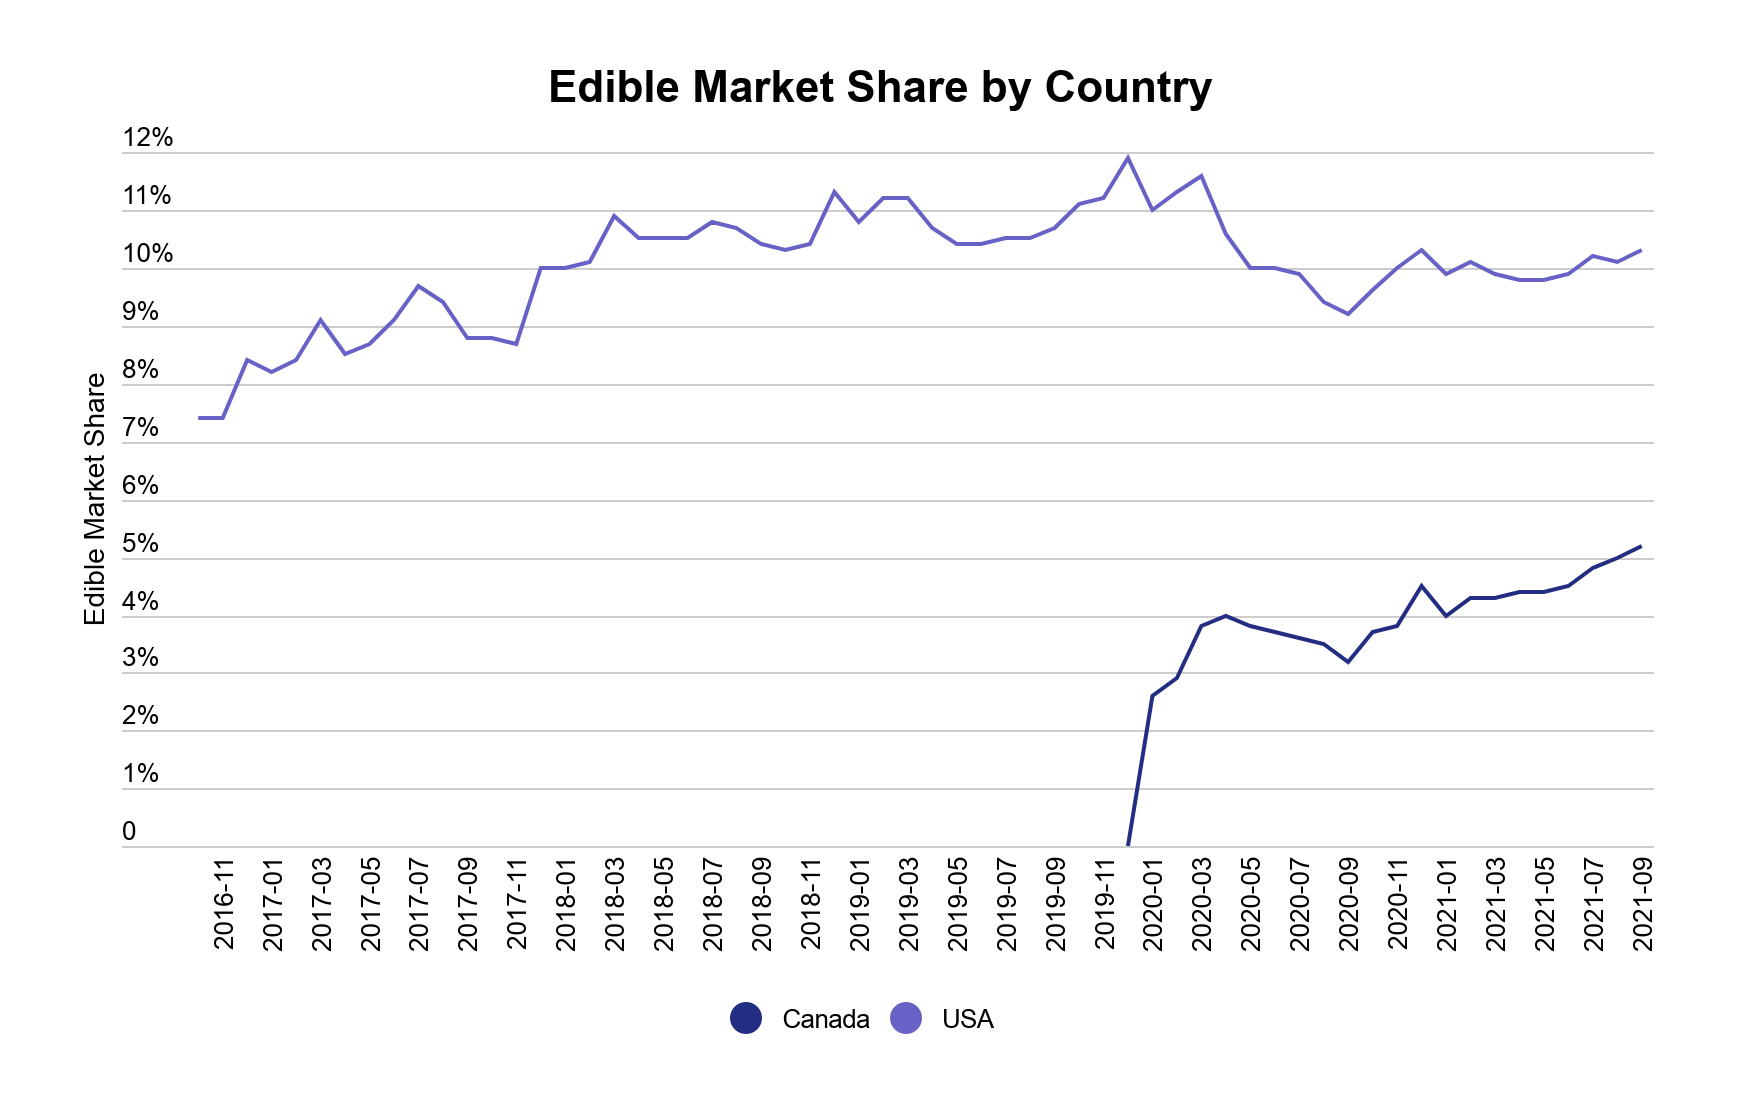 Cannabis edibles data & performance image 3: Cannabis edible market share trends in the US and Canada